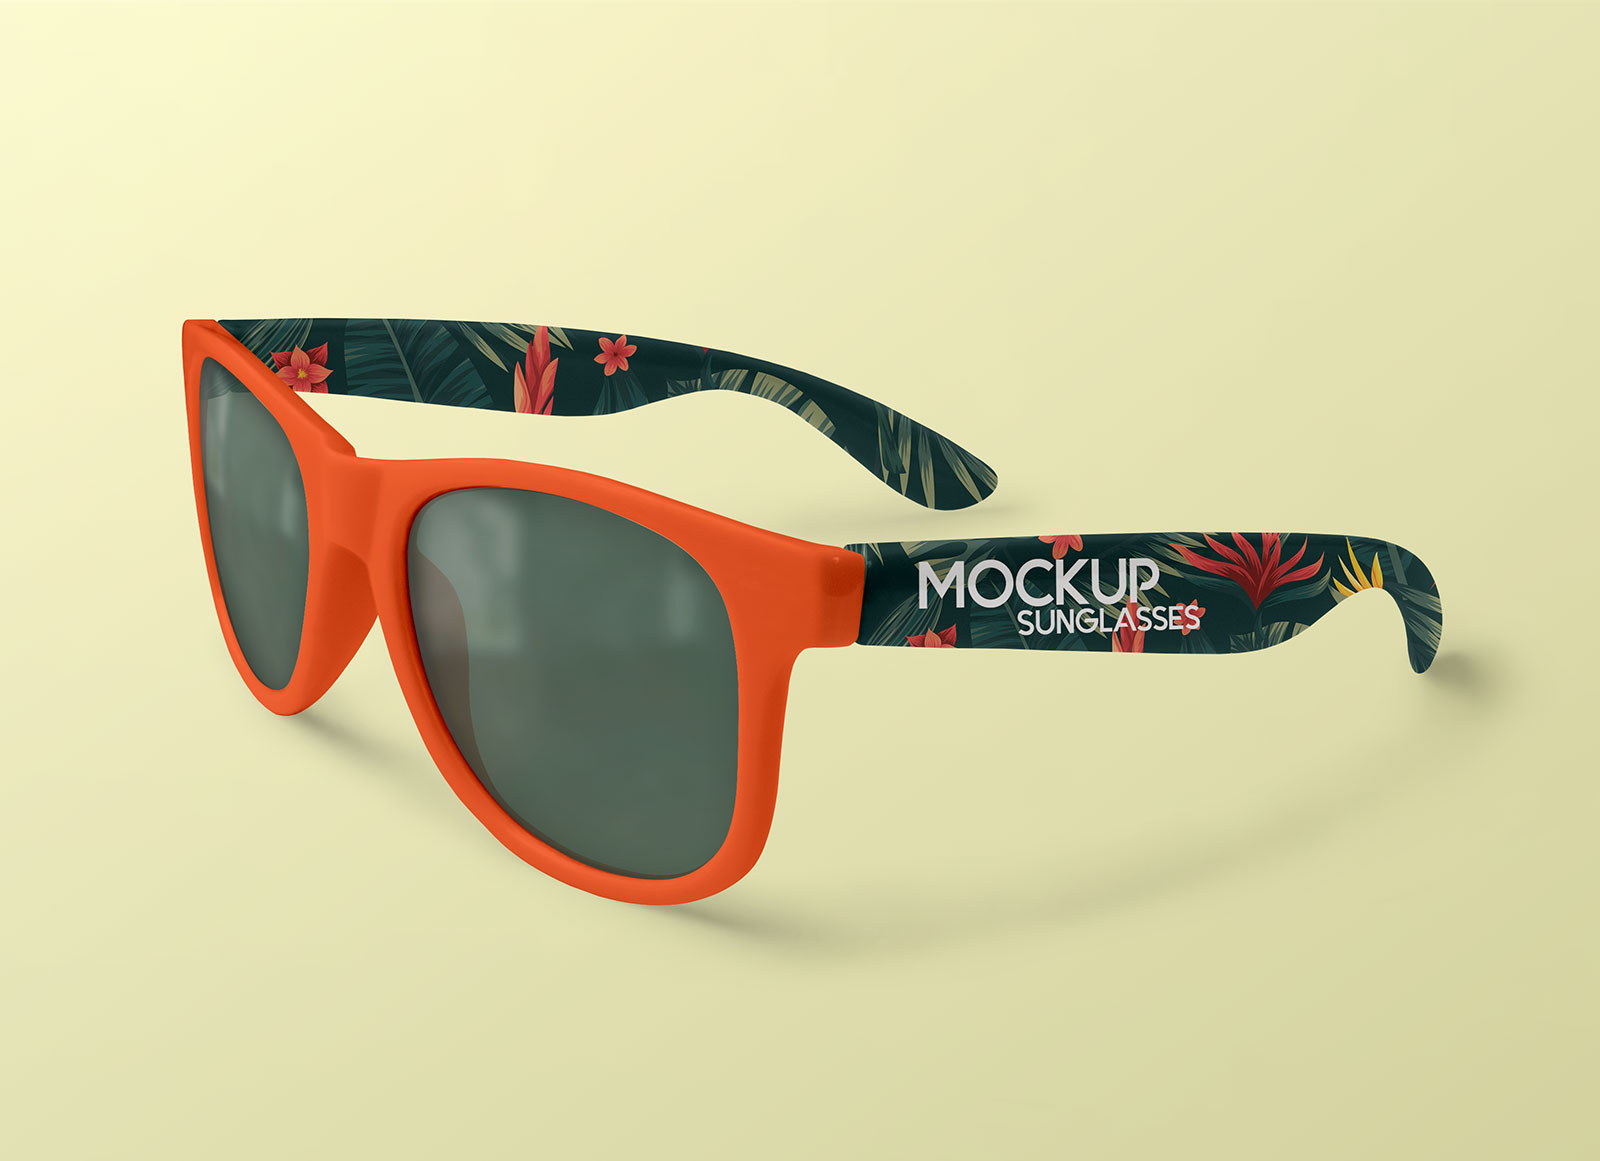 Free-Polarized-Sunglasses-Mockup-PSD